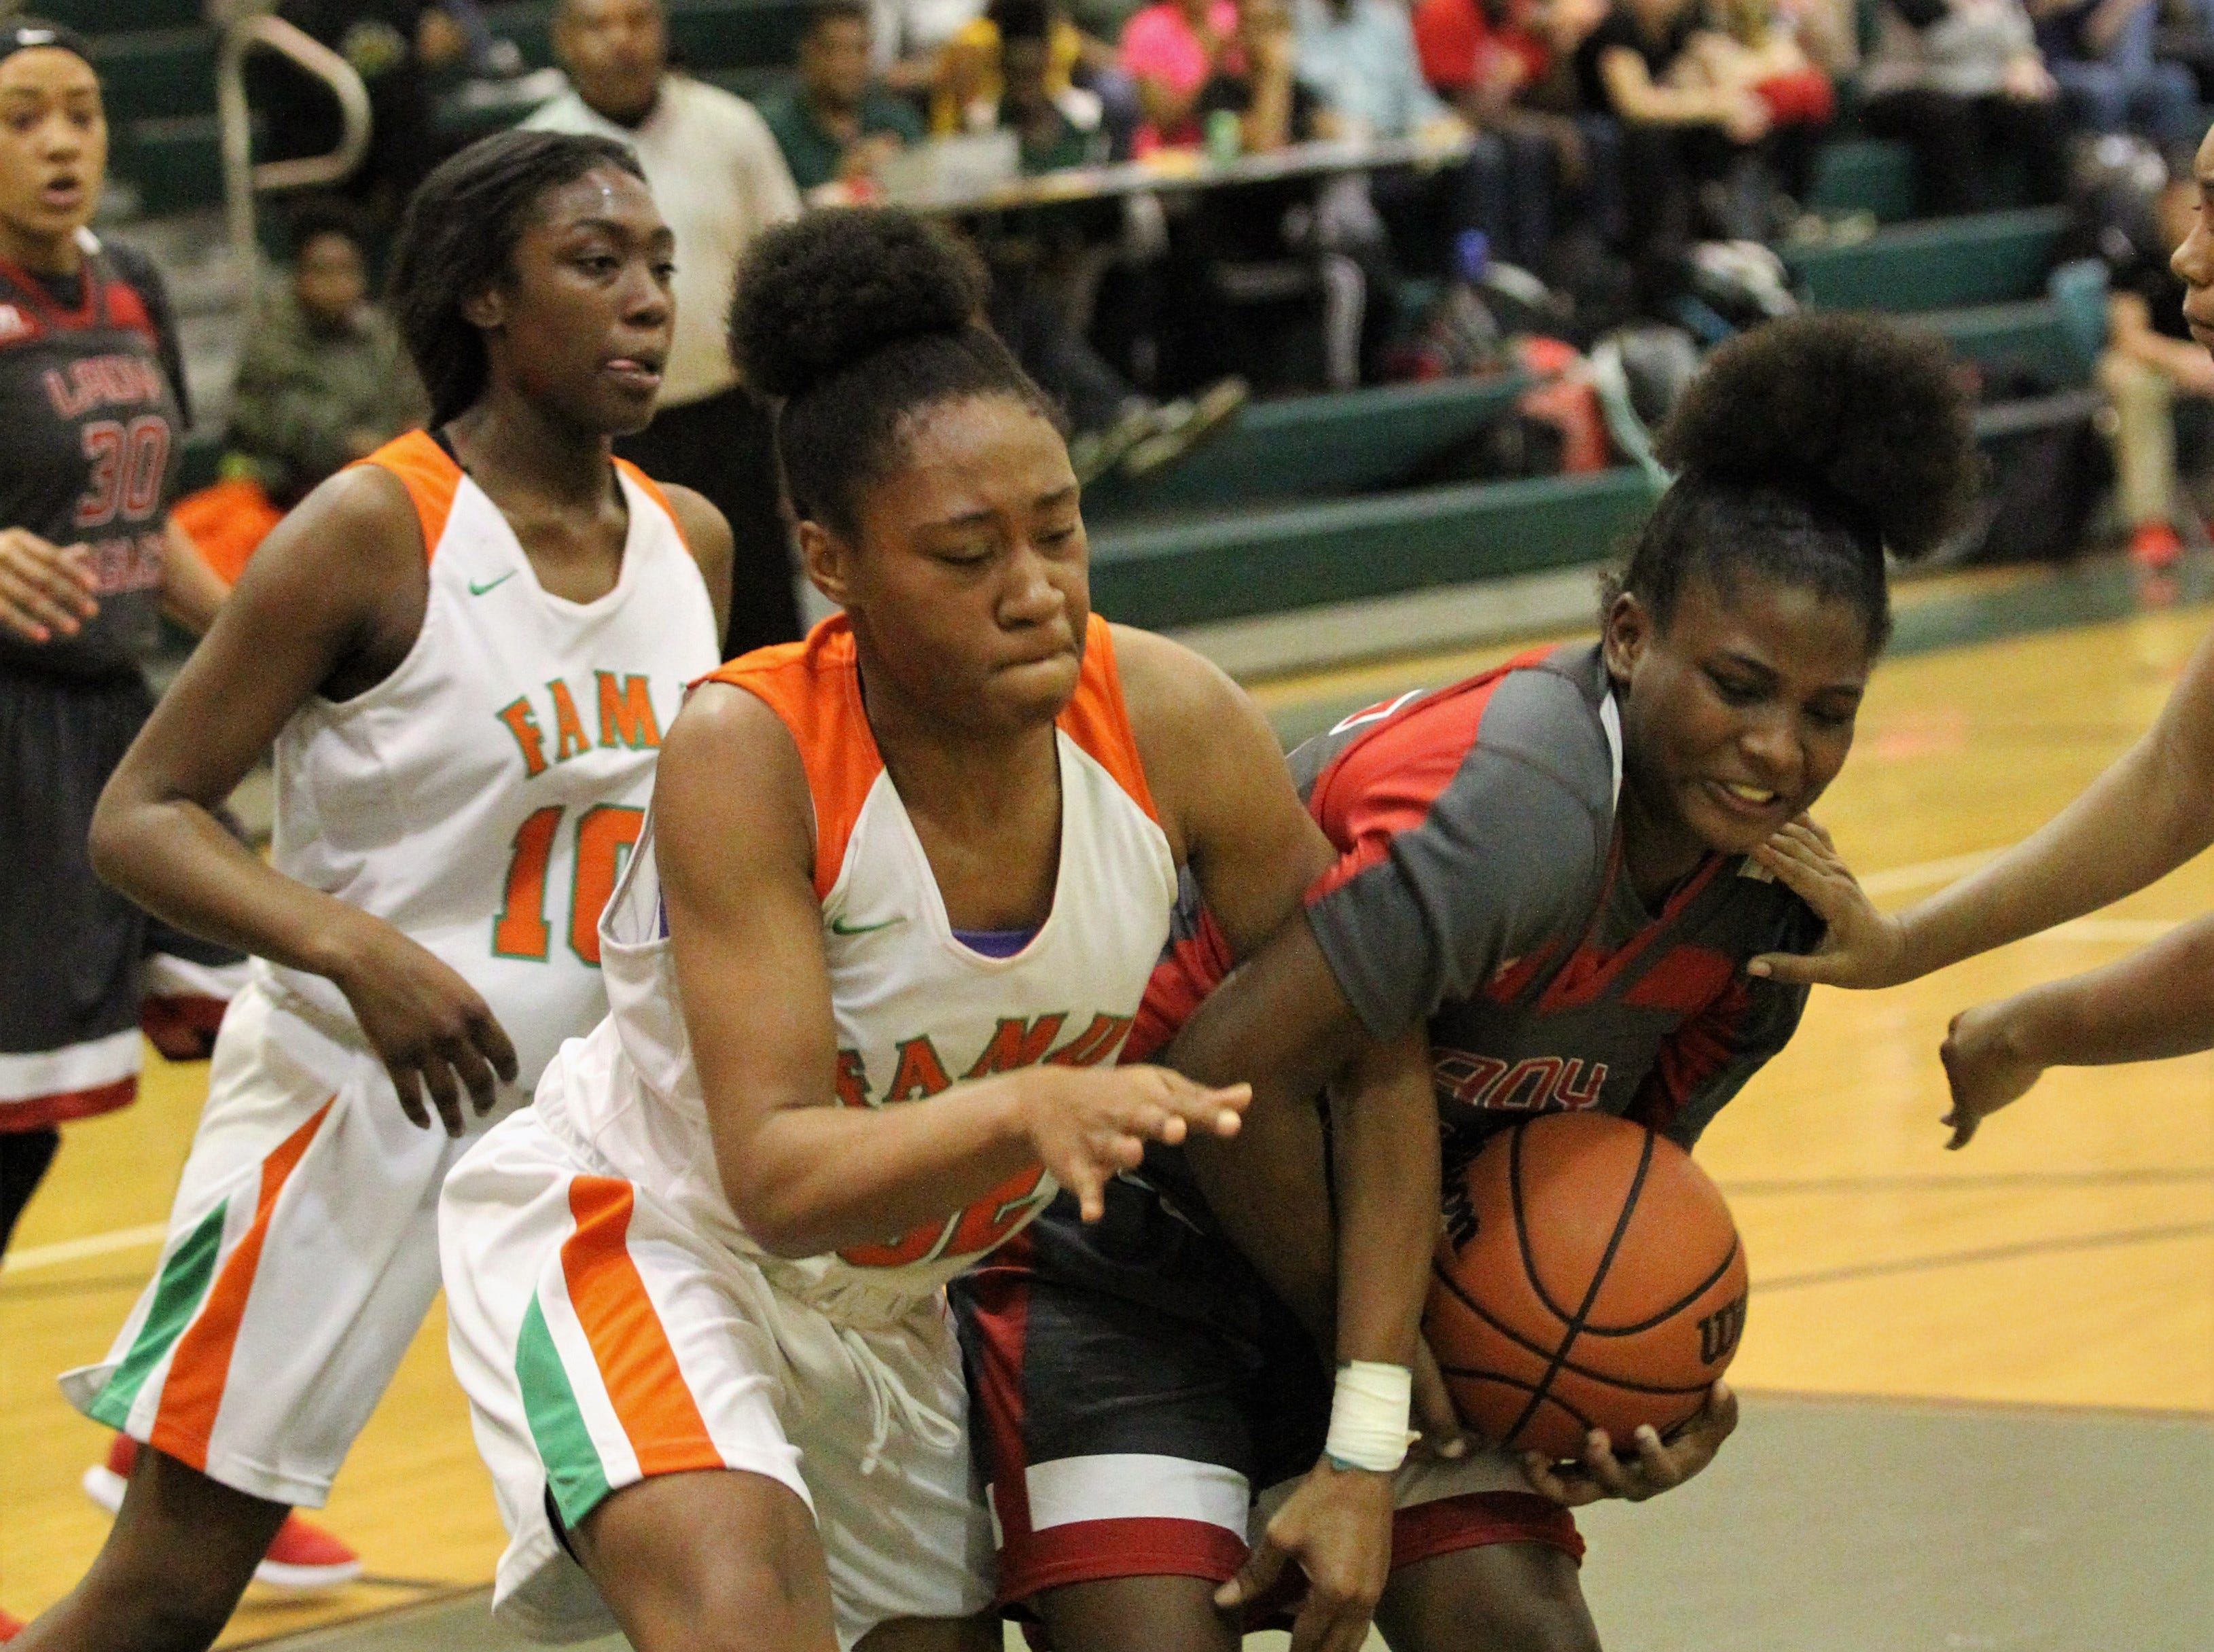 NFC freshman Alexis Howard gets tangled up with FAMU DRS sophomore Kennyhia Patterson after a rebound as FAMU DRS' girls basketball team beat NFC 59-41 for a District 1-3A title on Jan. 7, 2019.